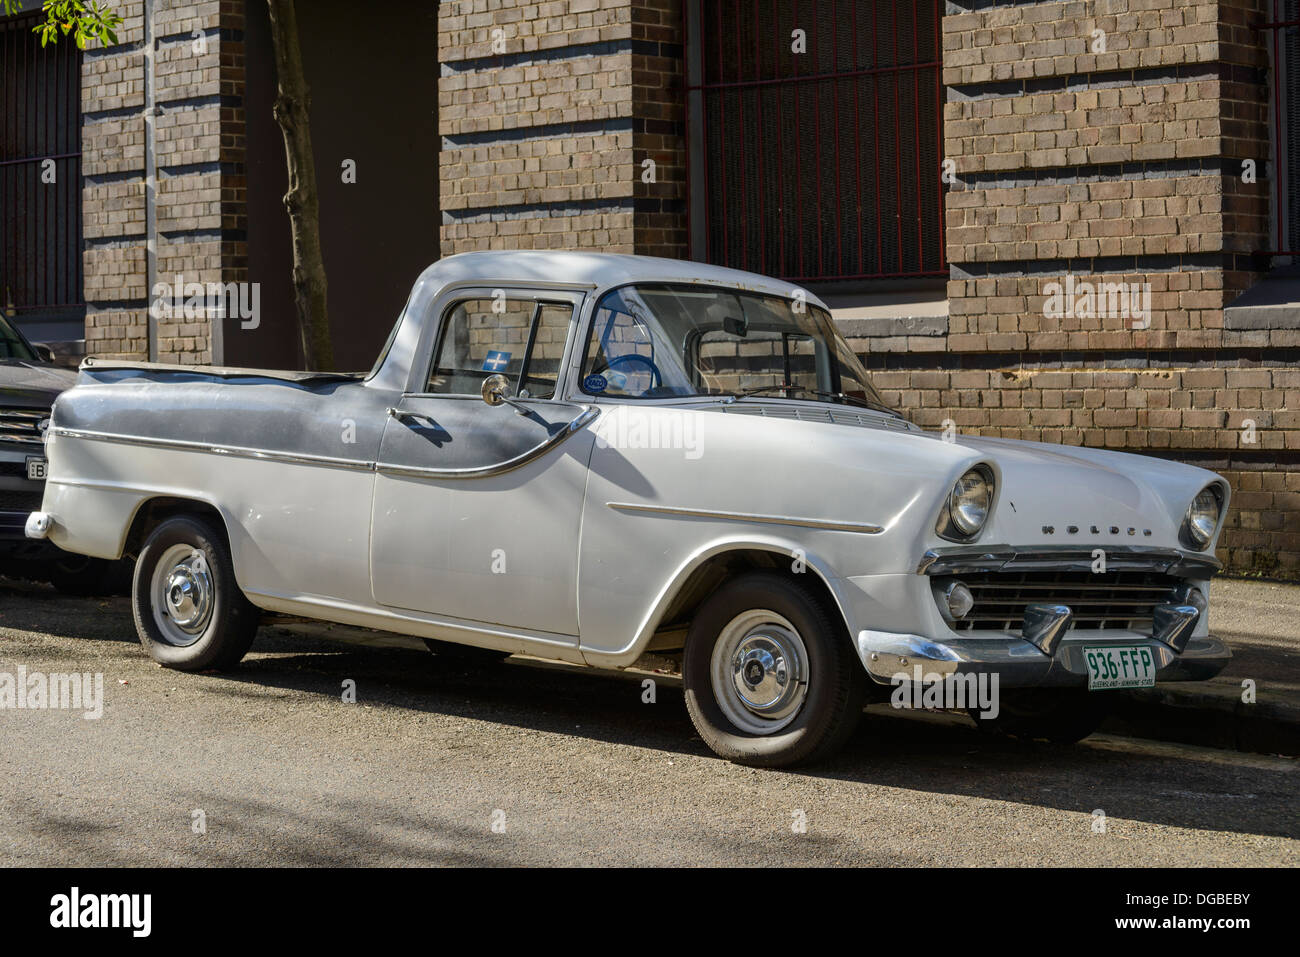 Early Model Holden Cars For Sale